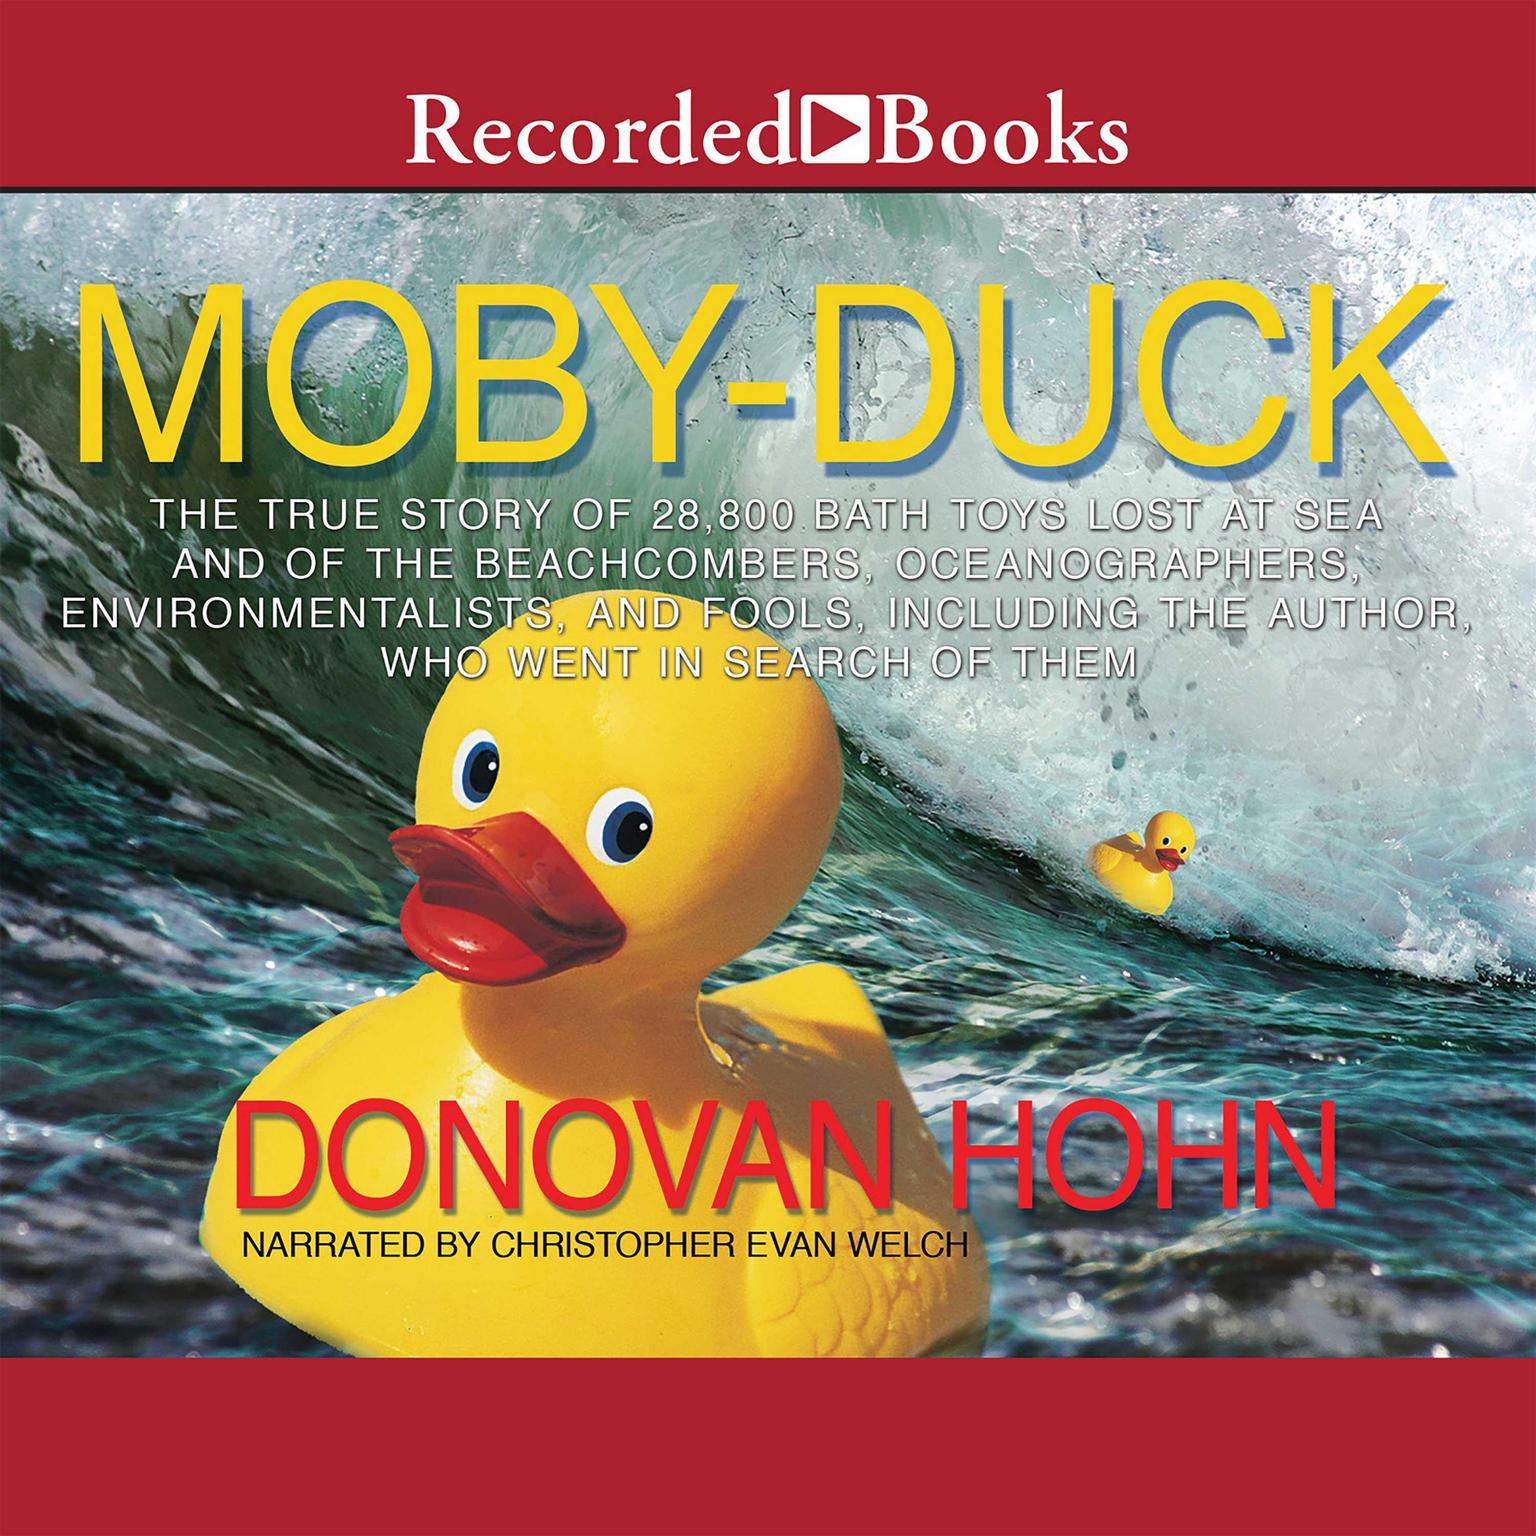 Printable Moby-Duck: The True Story of 28,800 Bath Toys Lost at Sea and of the Beachcombers, Oceanographers, Environmentalists, and Fools, Including the Author, Who Went in Search of Them Audiobook Cover Art